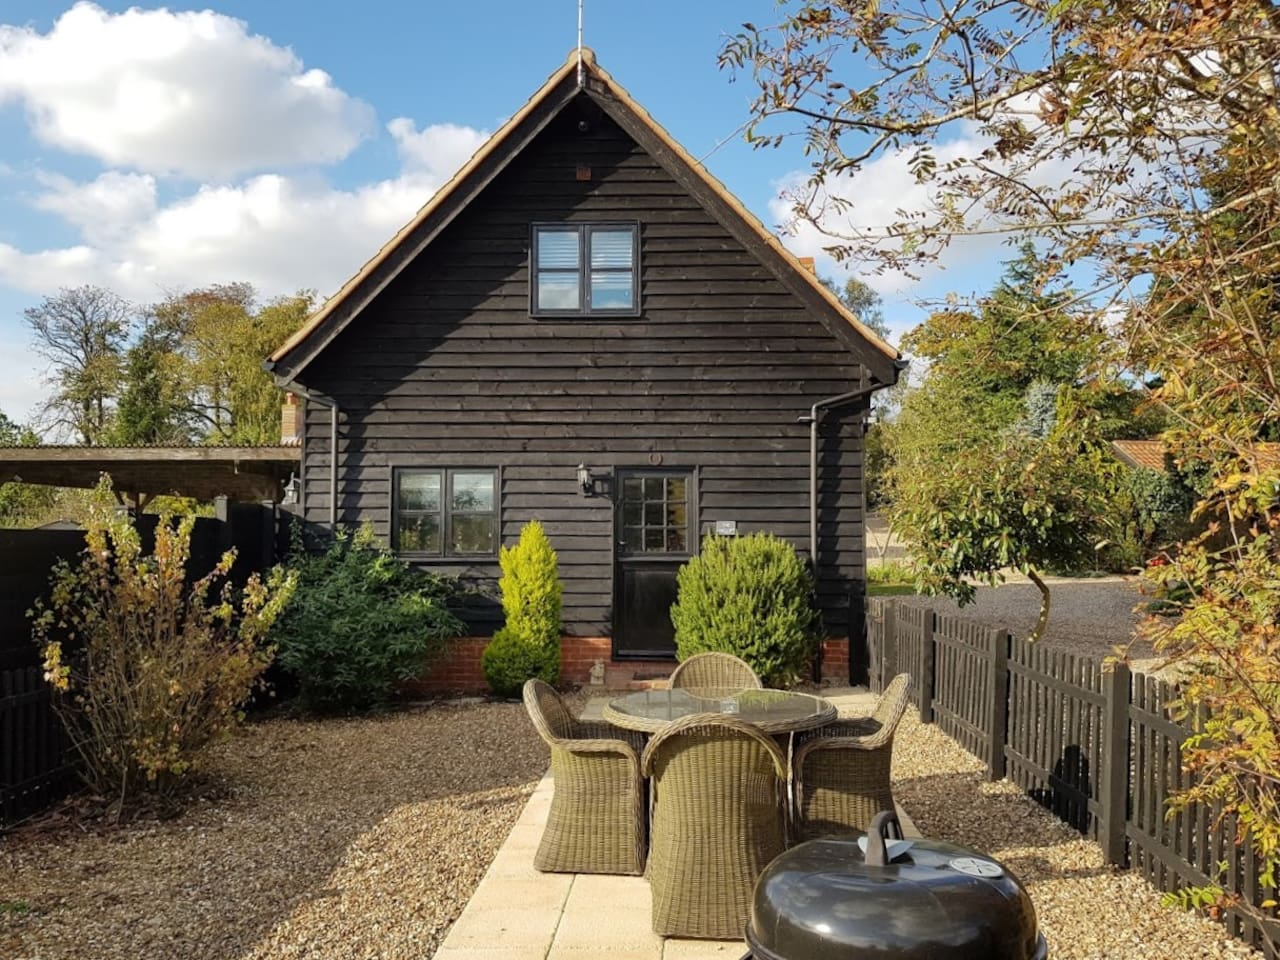 The Hayloft - an idyllic retreat in the countryside.